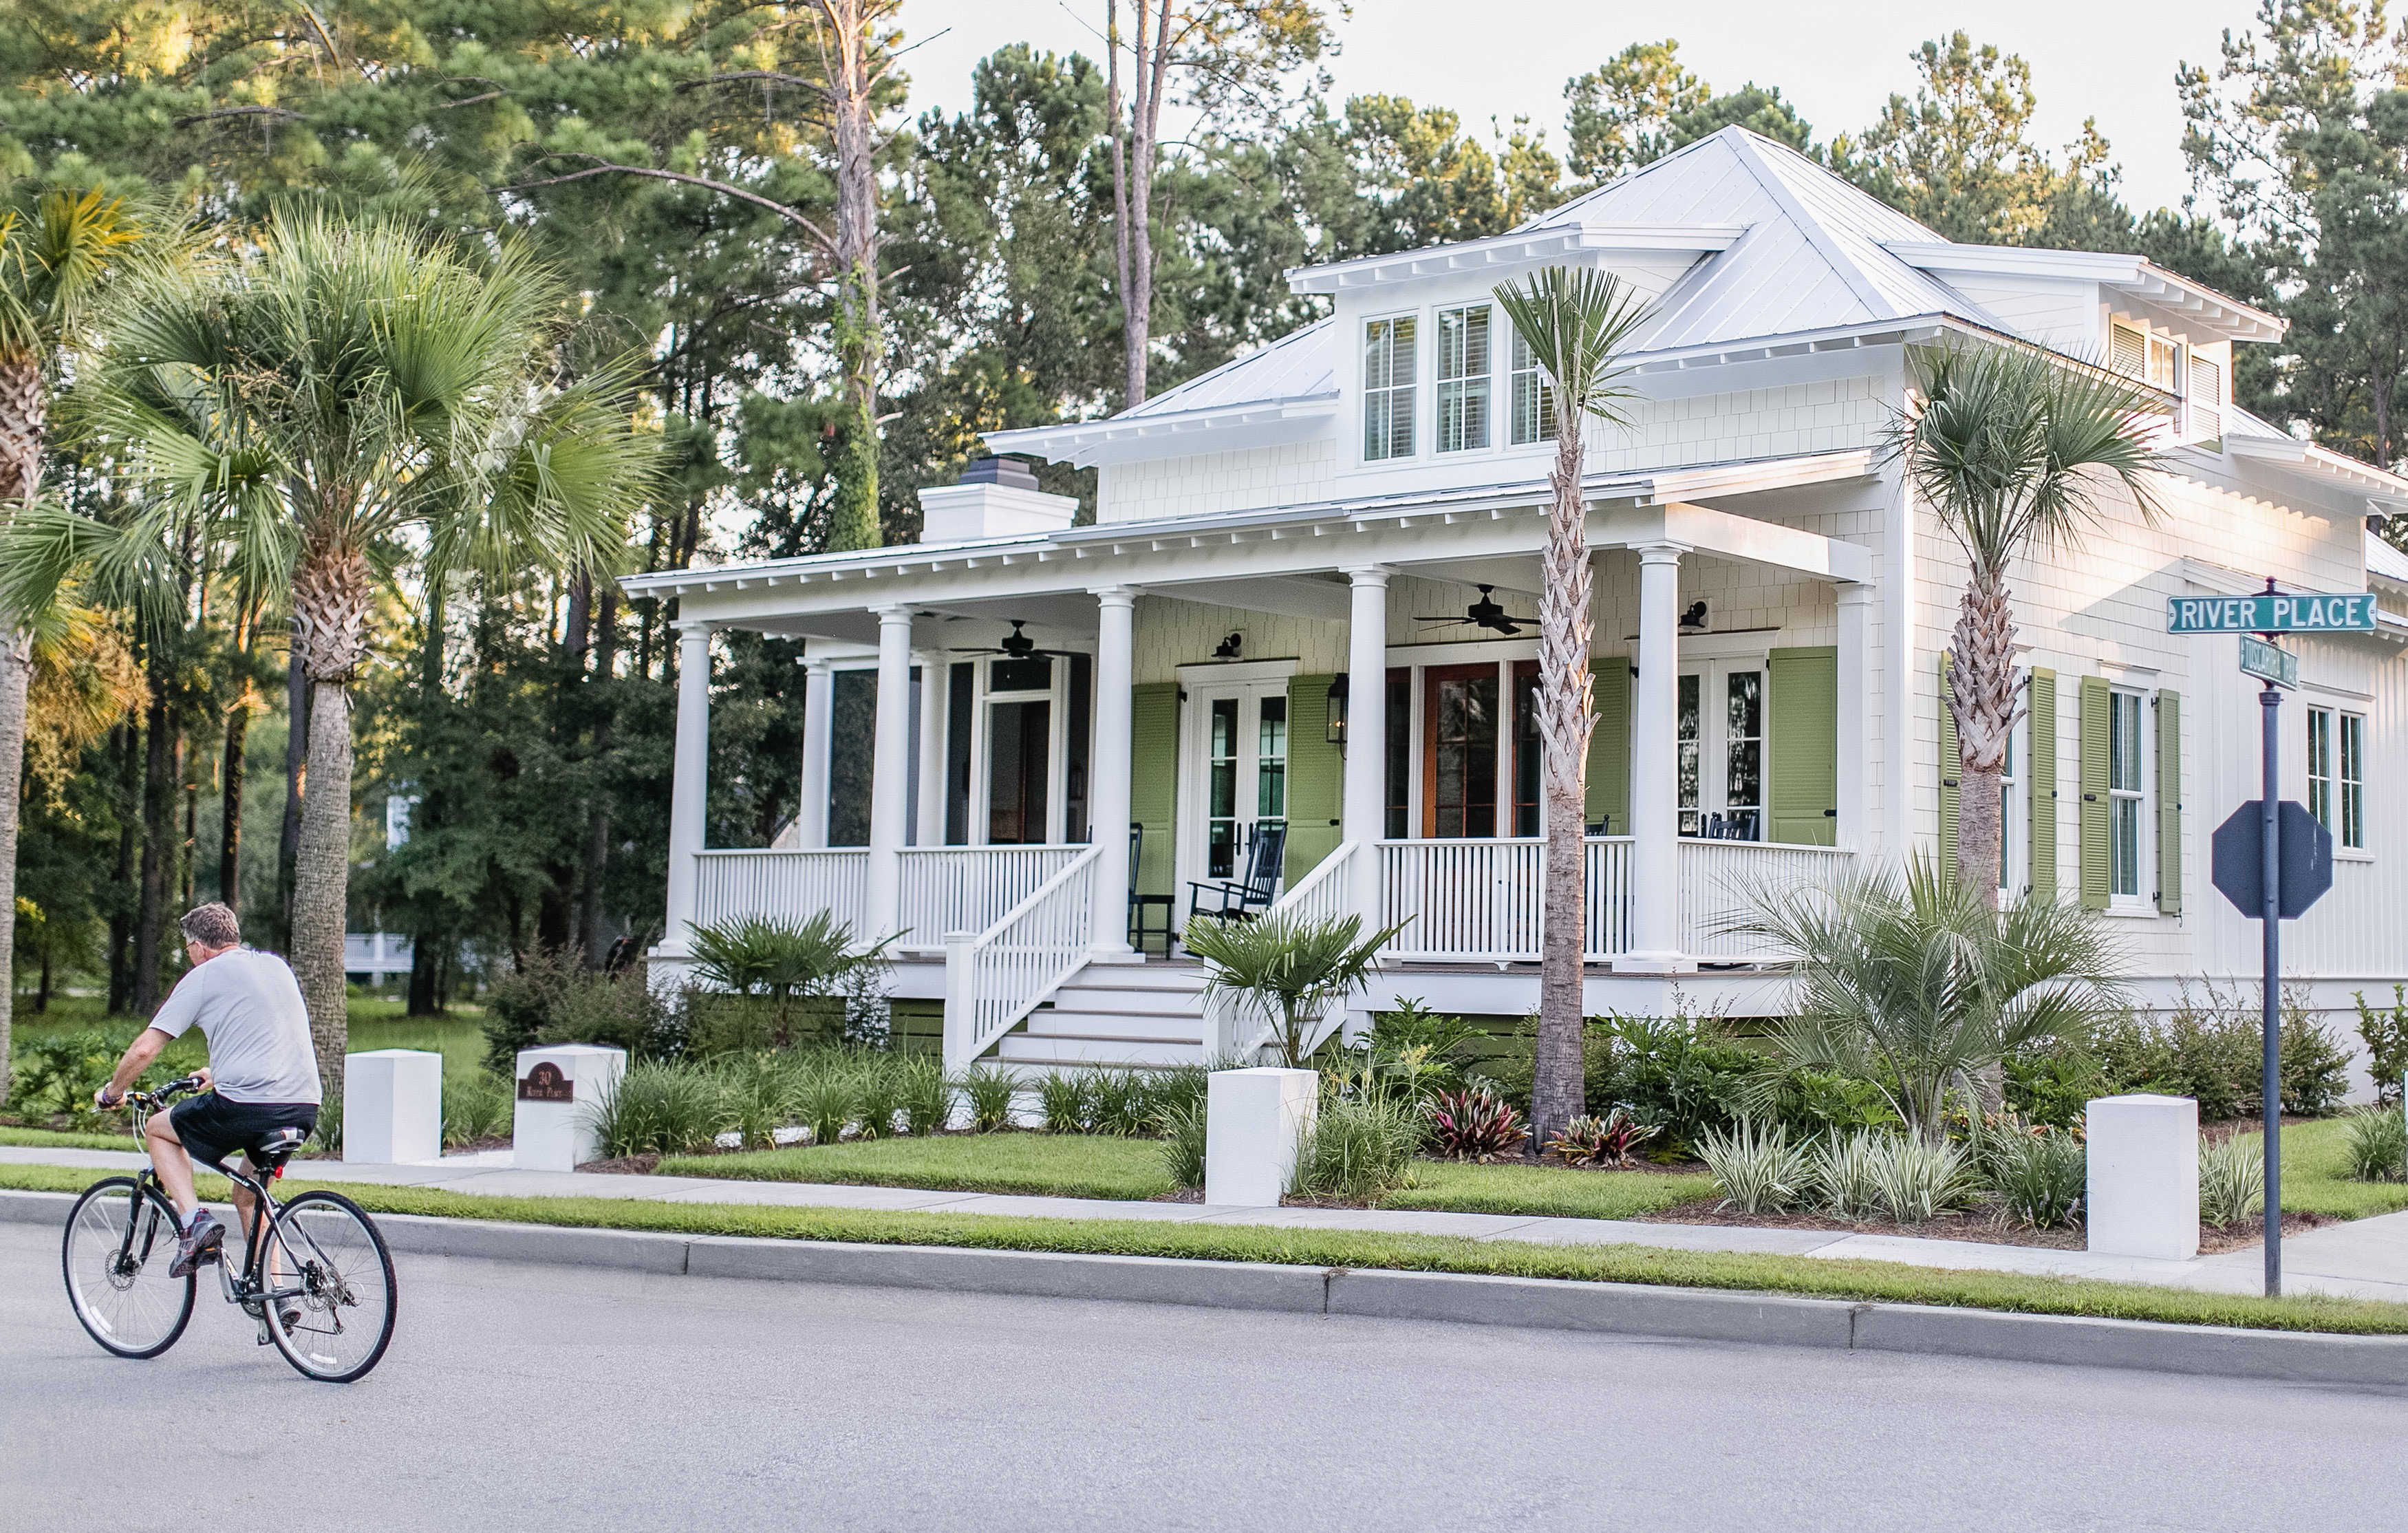 one louisiana low design flickr plantation plans cottage cottages country homeplace creole southern habs house basement fro lowcountry plan story raised floor historic